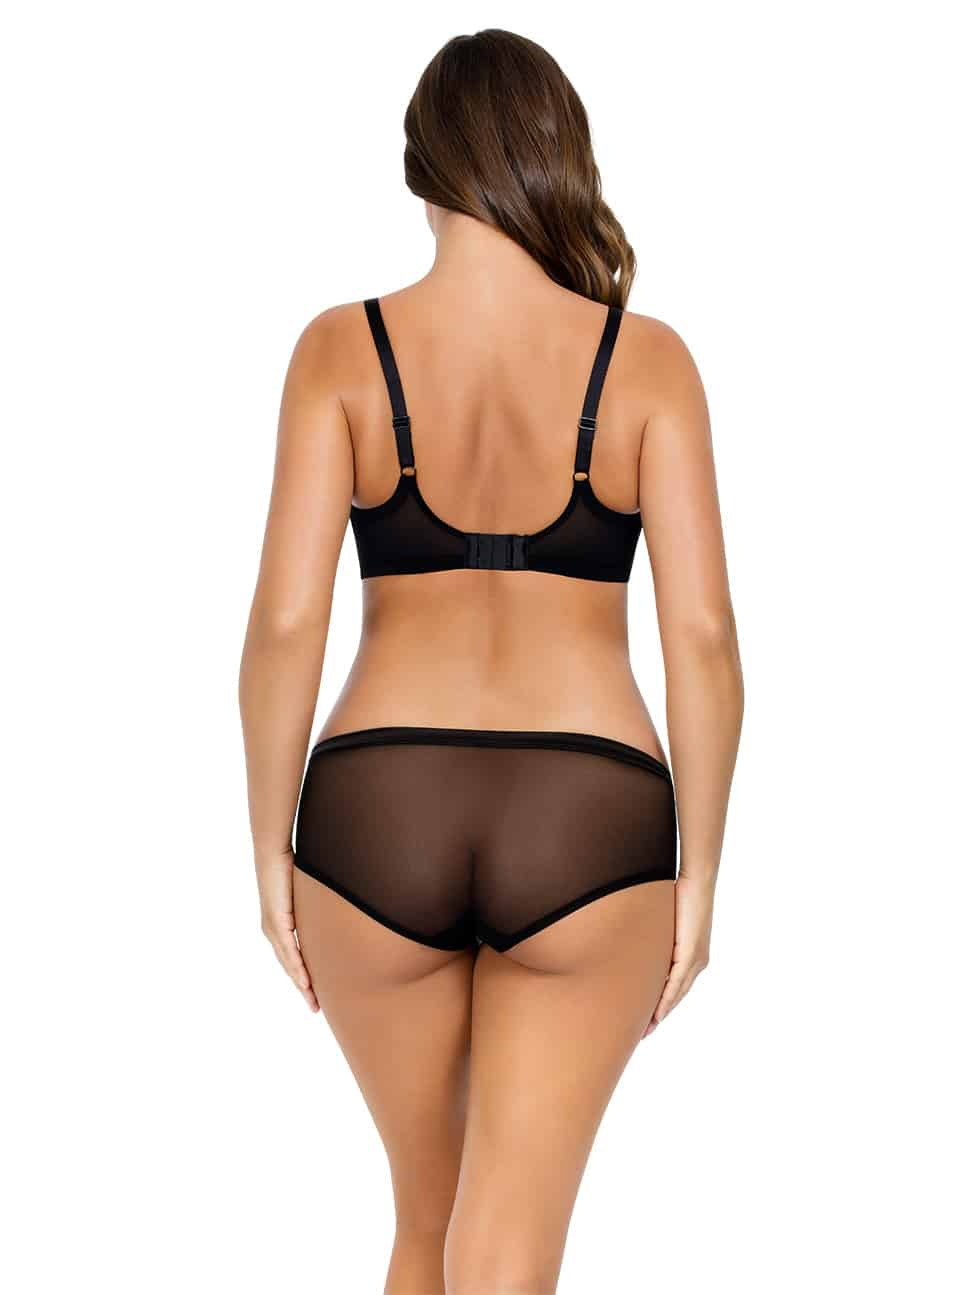 PARFAIT Lulu UnderwireBraP5612 HipsterP5615 BlackPewter Back copy 2 - Lulu Underwire Bra - Black/Pewter - P5612